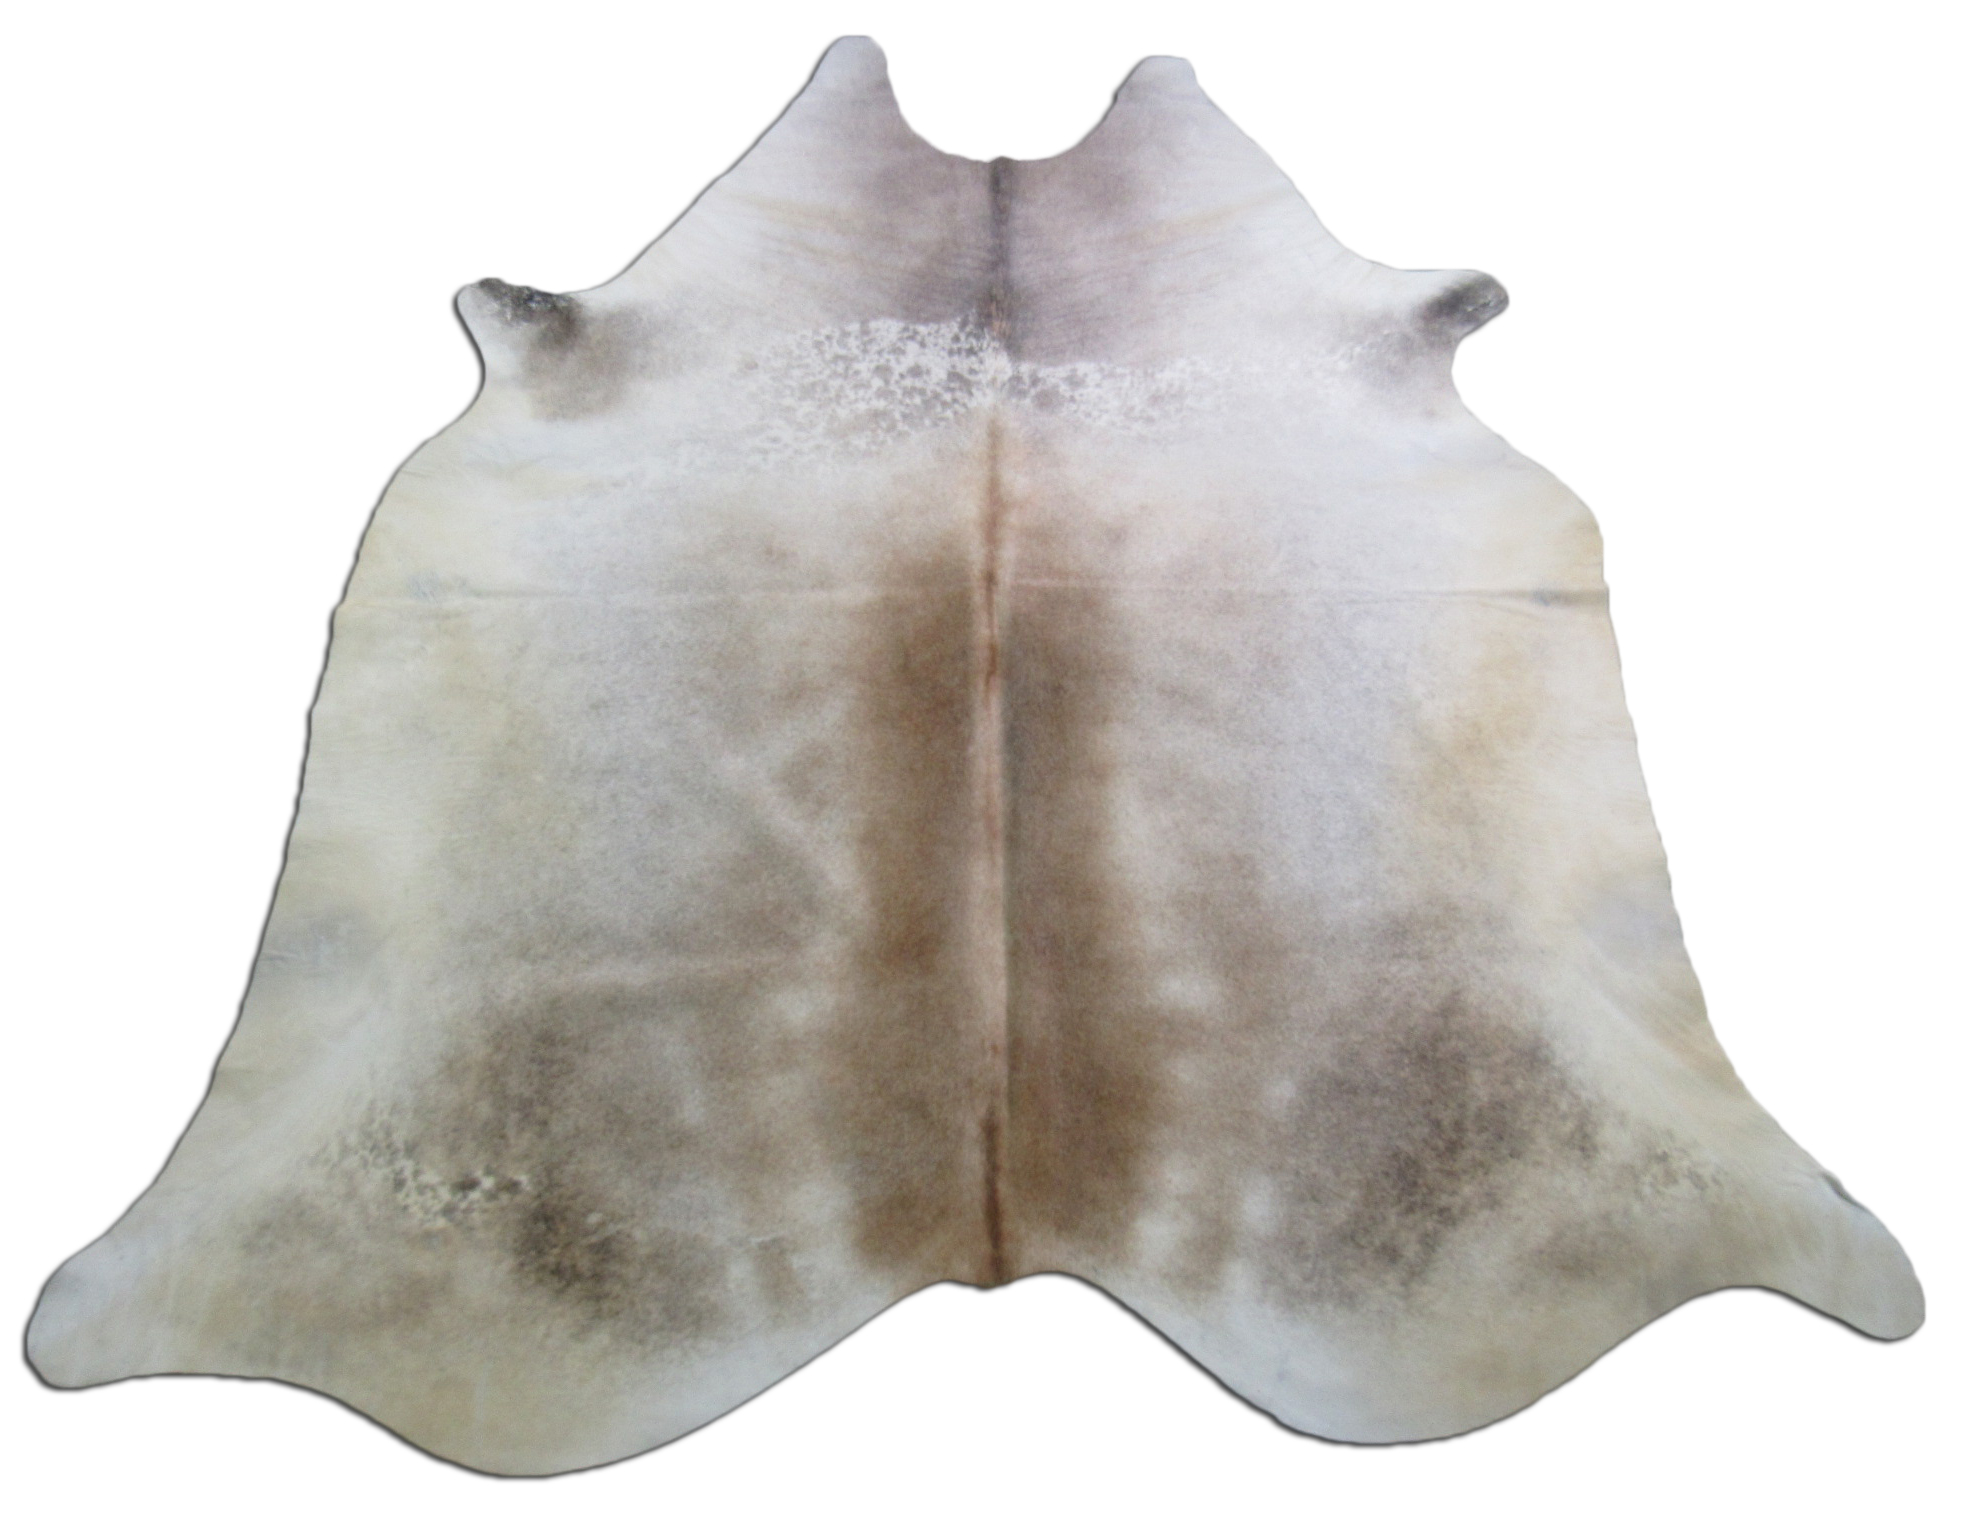 A-1218 Grey and Beige Cowhide Rug Size: 8' X 7'